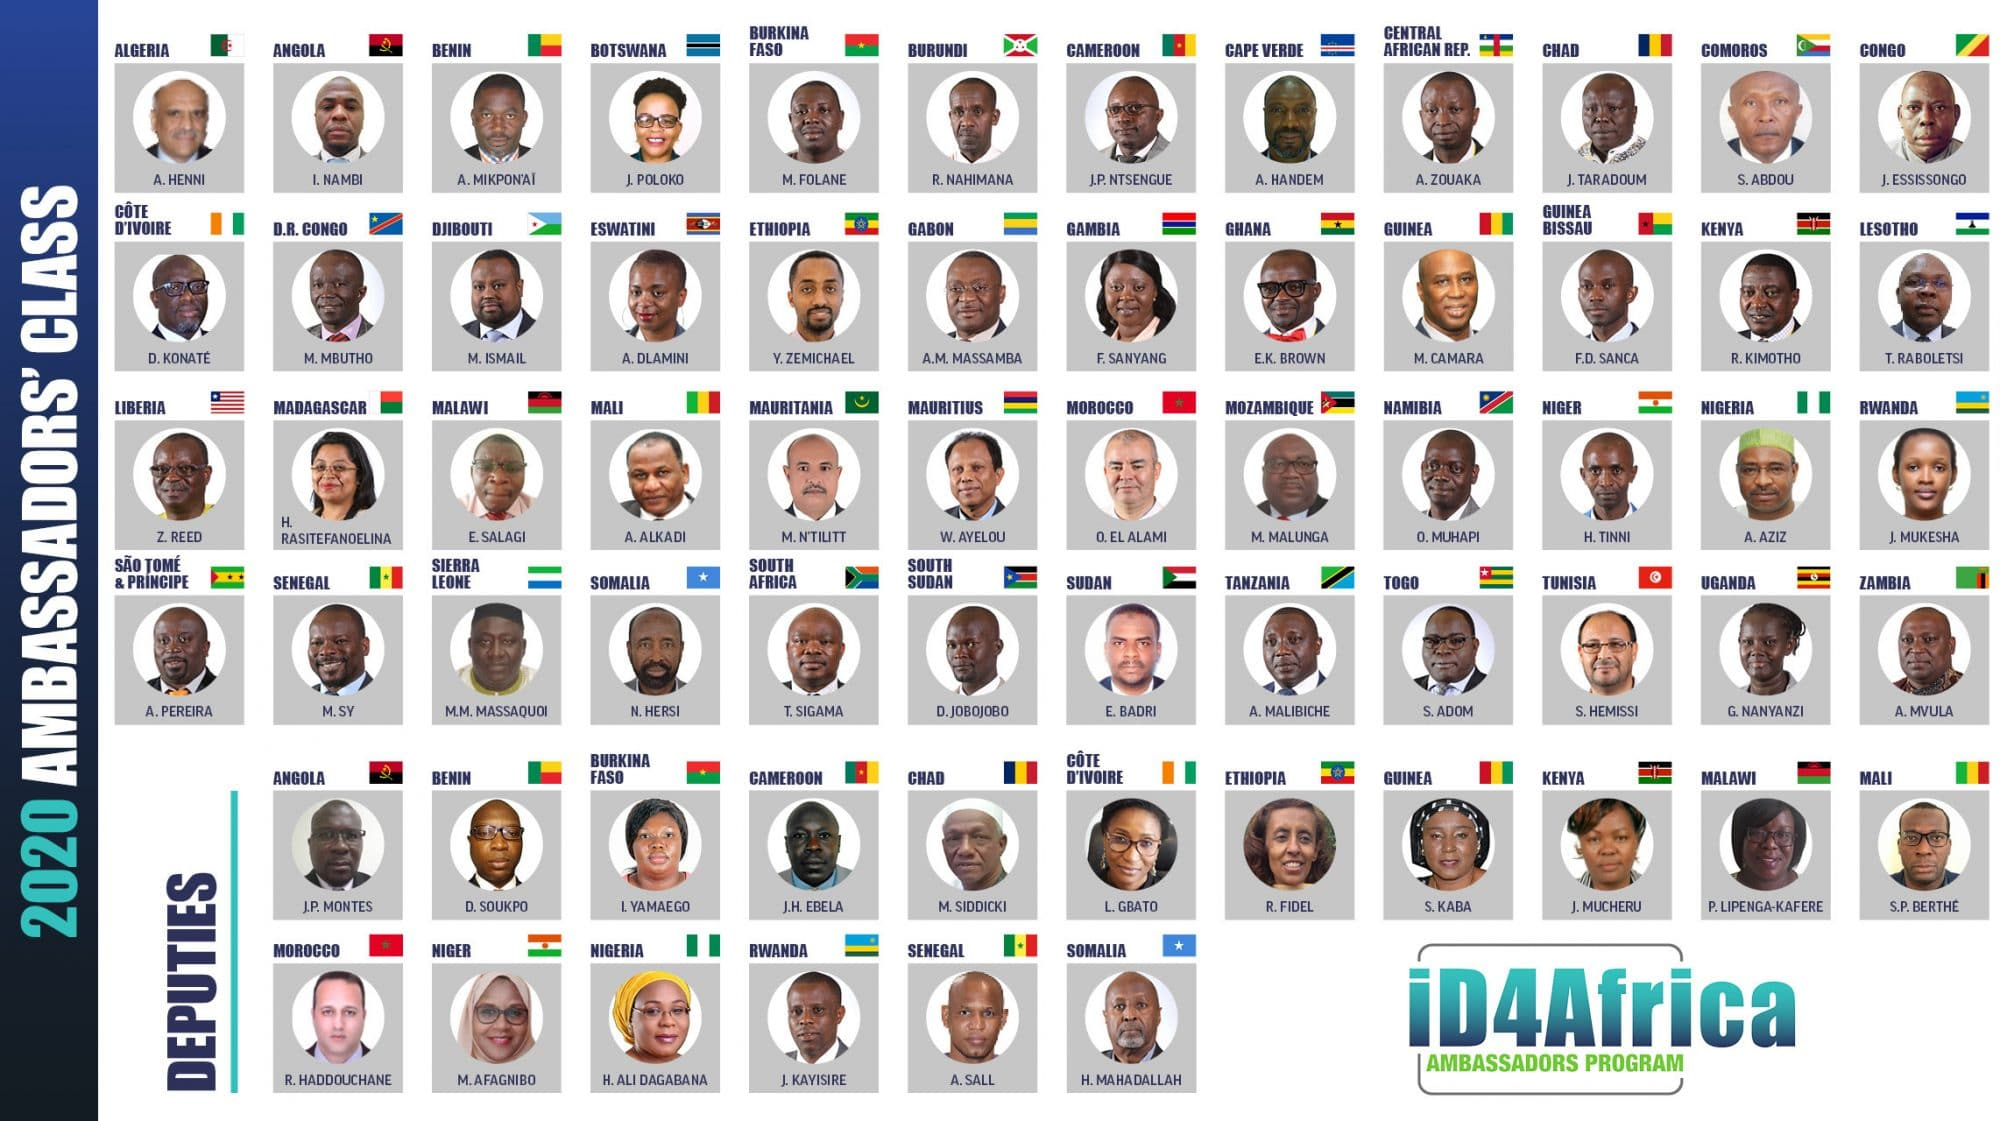 ID4Africa Ambassador program expands again with new positions and nearly all African nations included